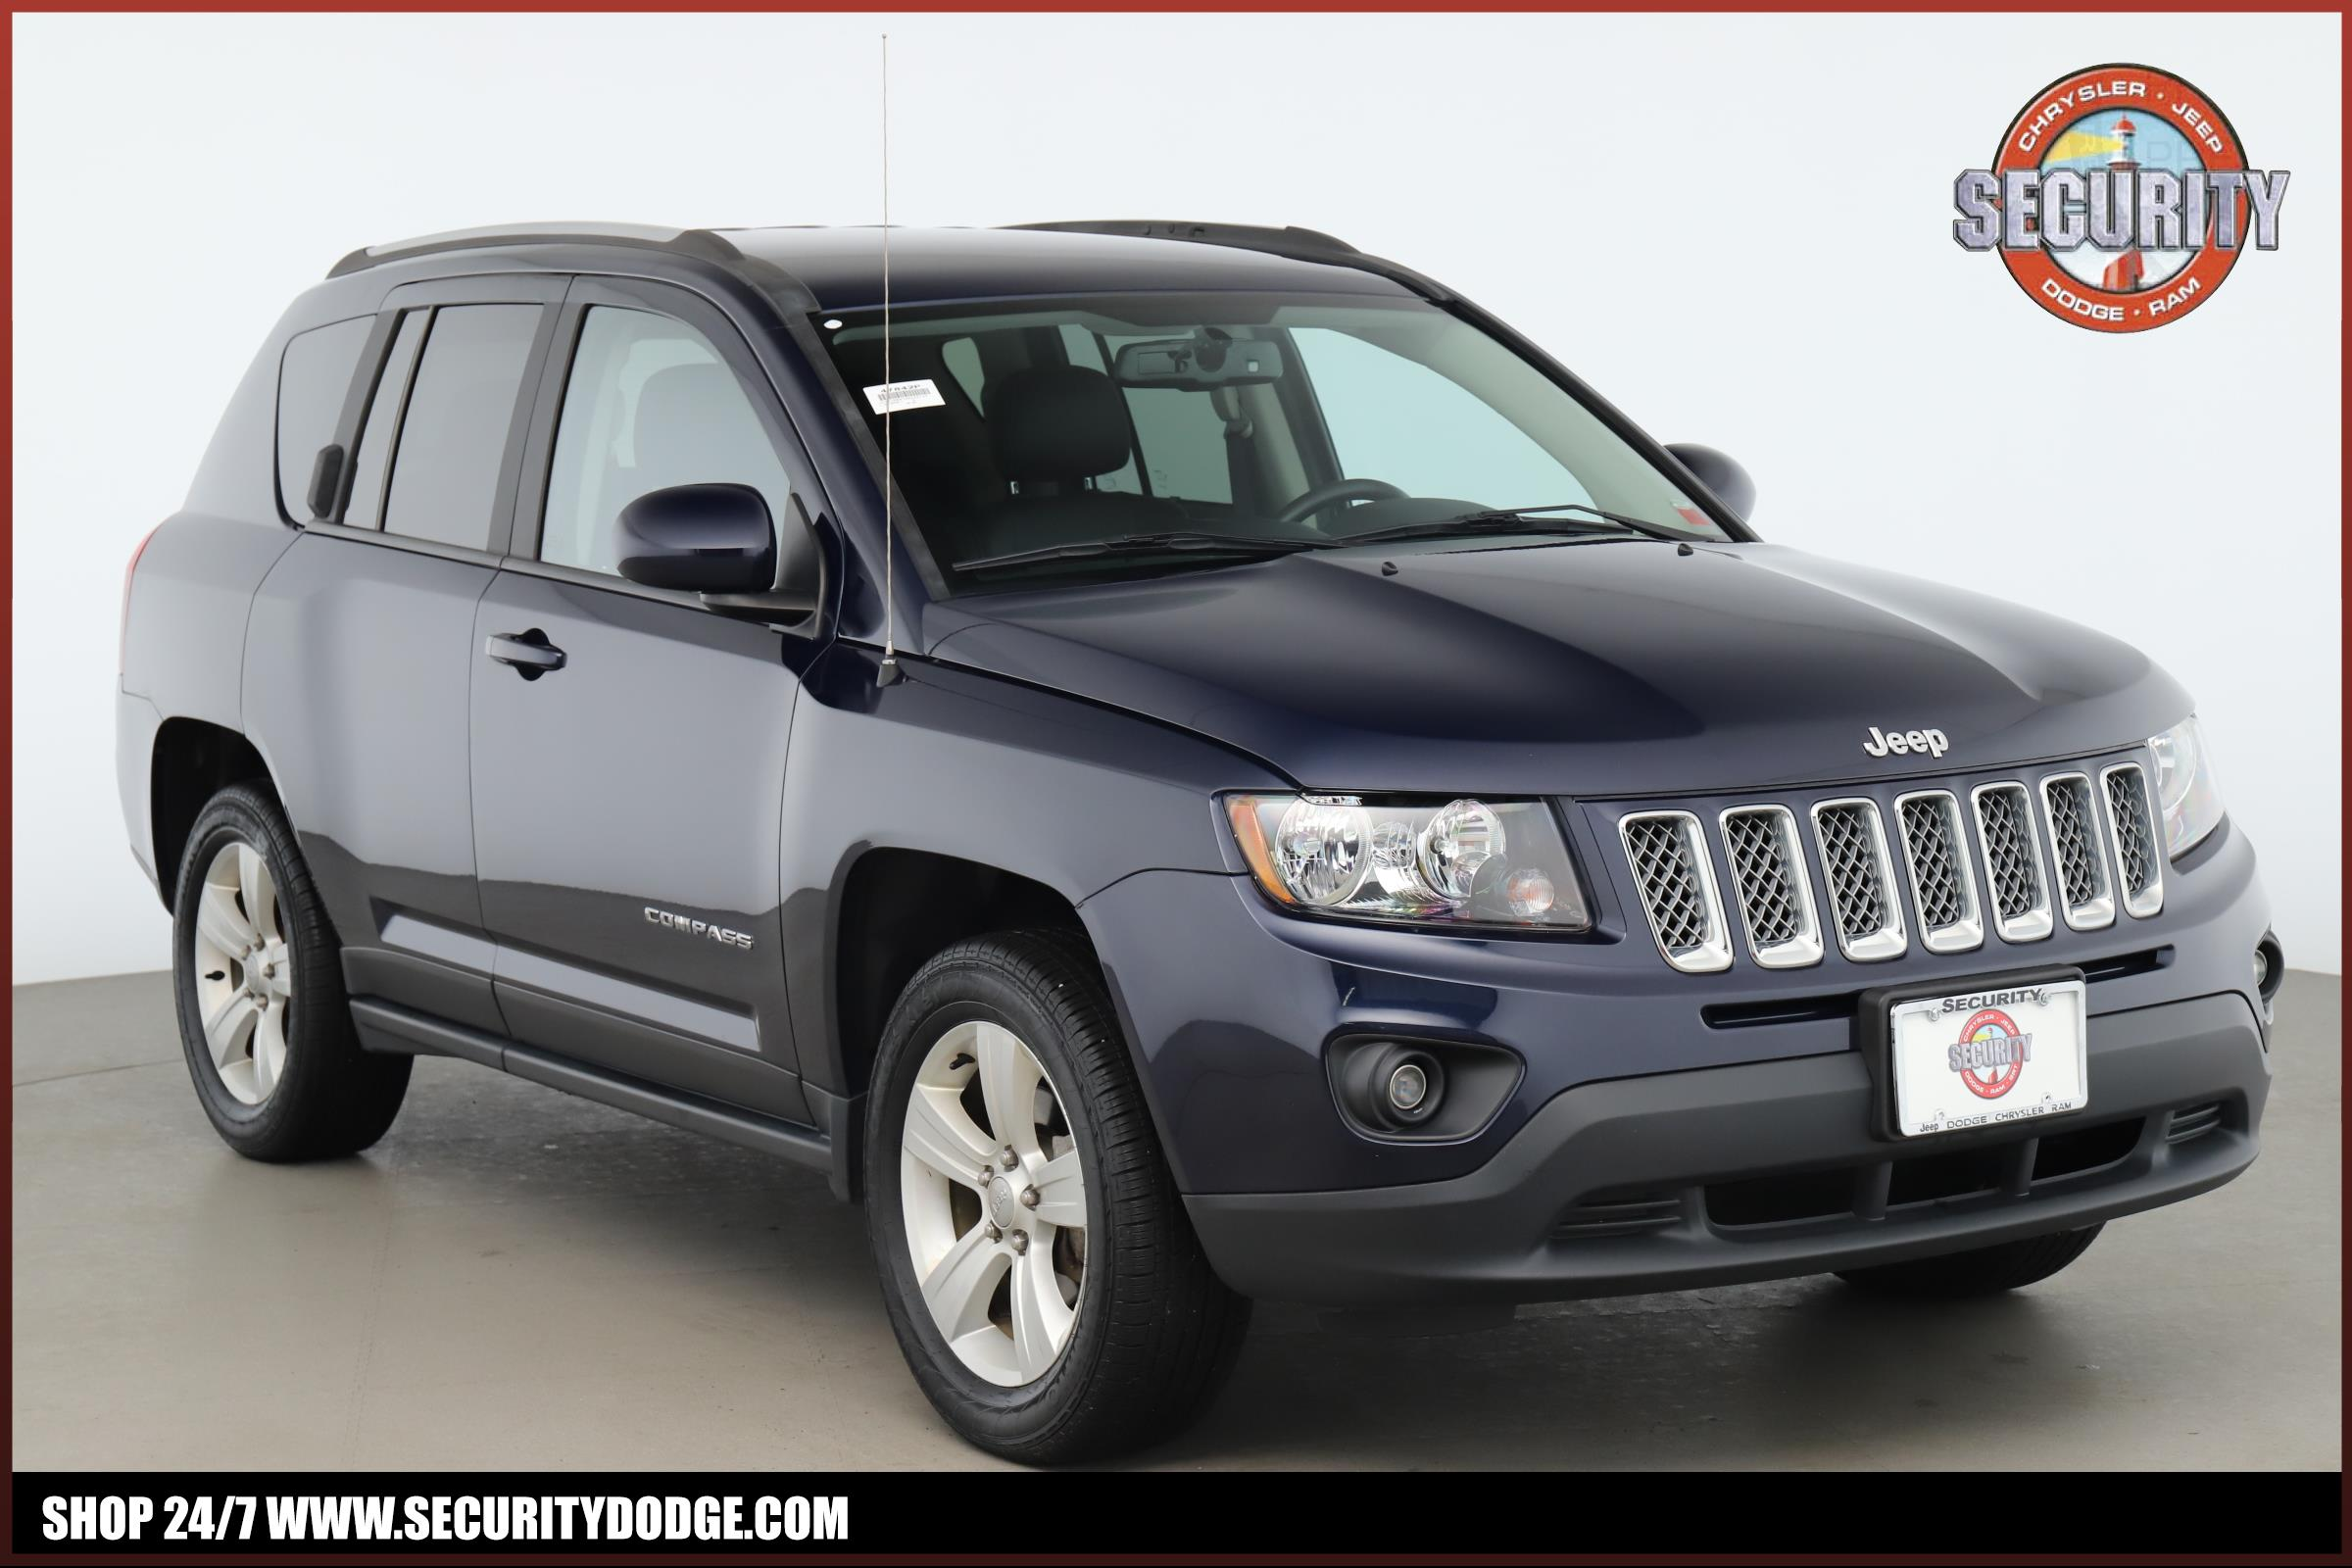 Certified Pre-Owned 2017 Jeep Compass Latitude 4x4